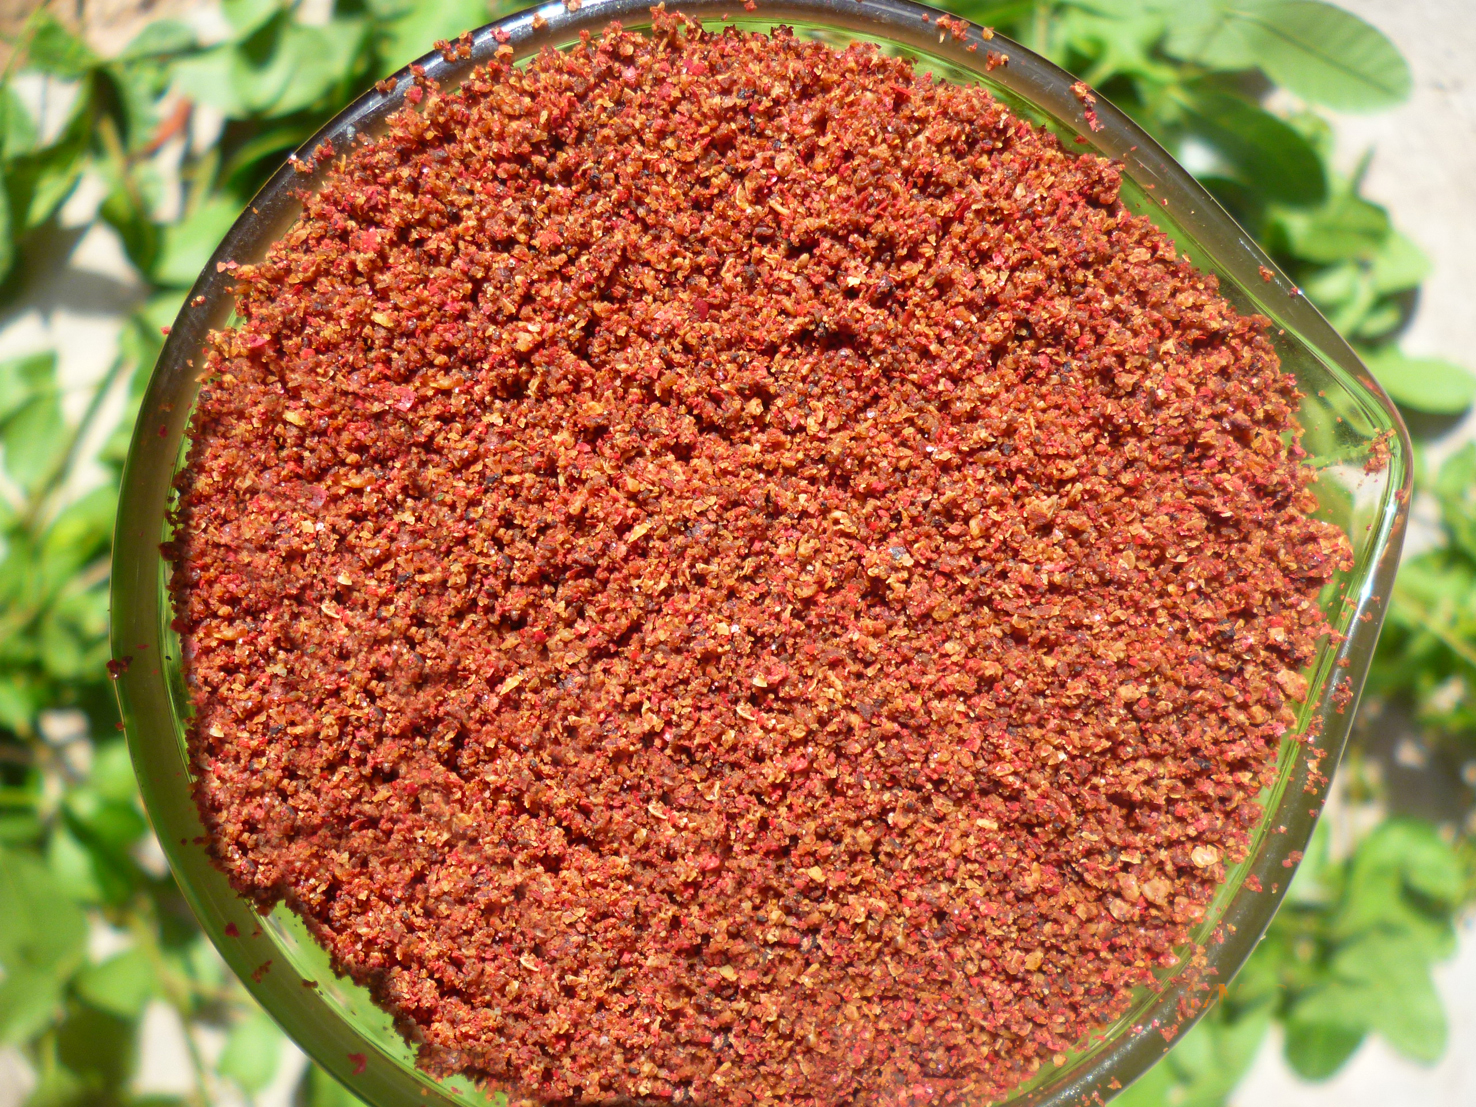 GROUND PINK PEPPER